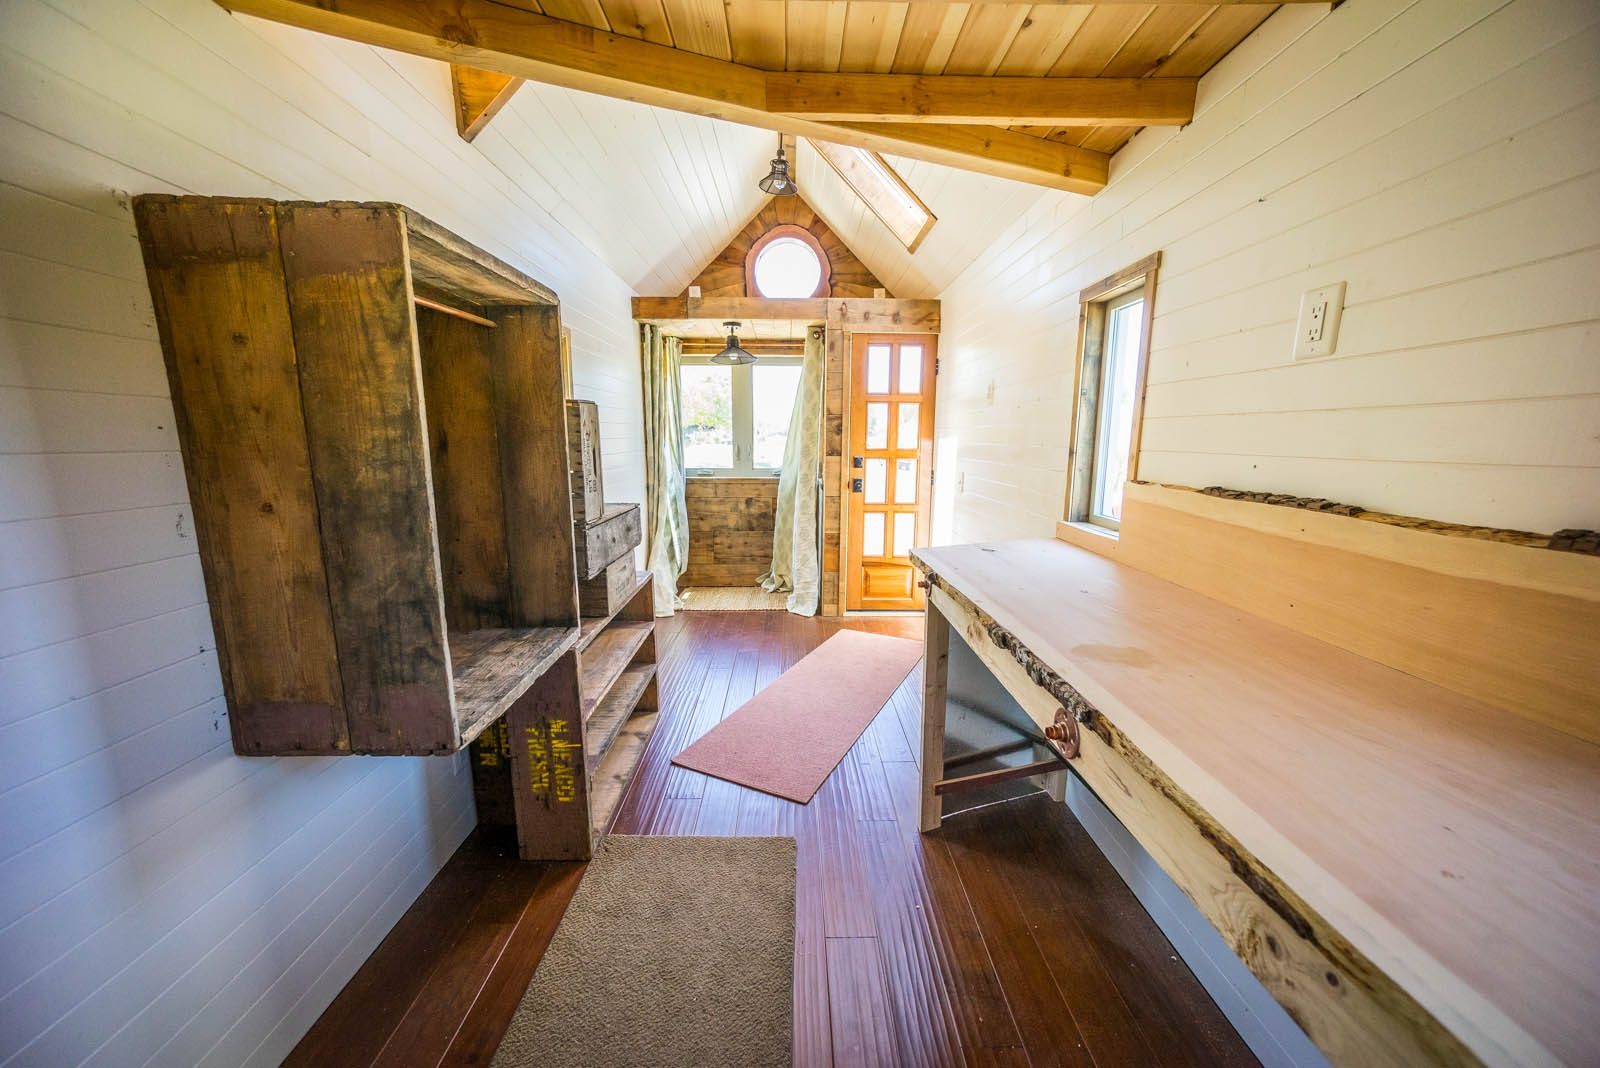 Tiny house giant journey interior tiny house giant journey Interior pictures of tin homes